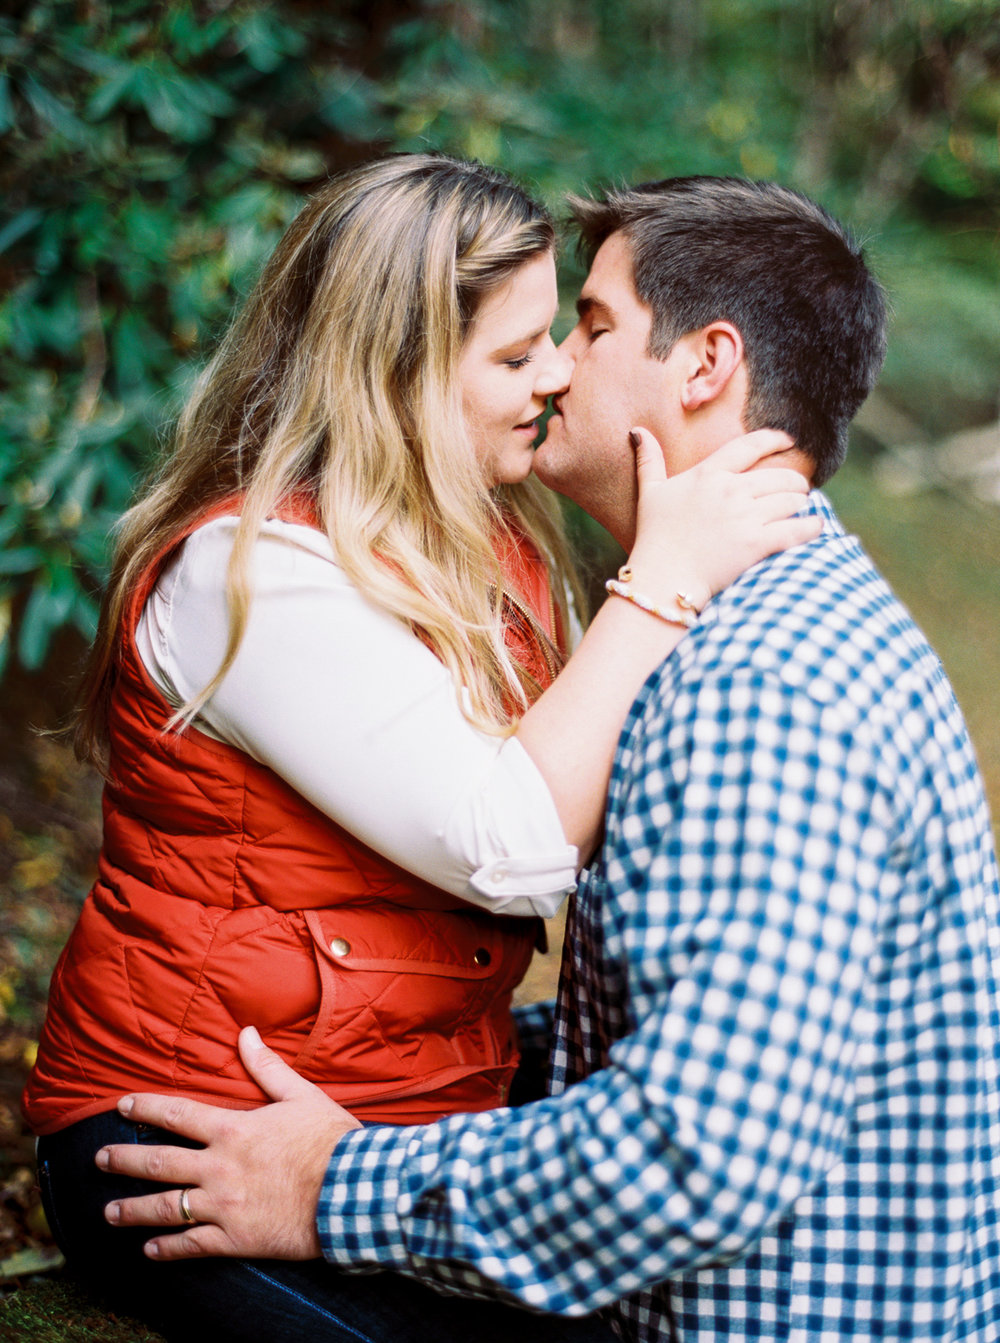 Fall-Asheville-Engagement-Session-11.jpg